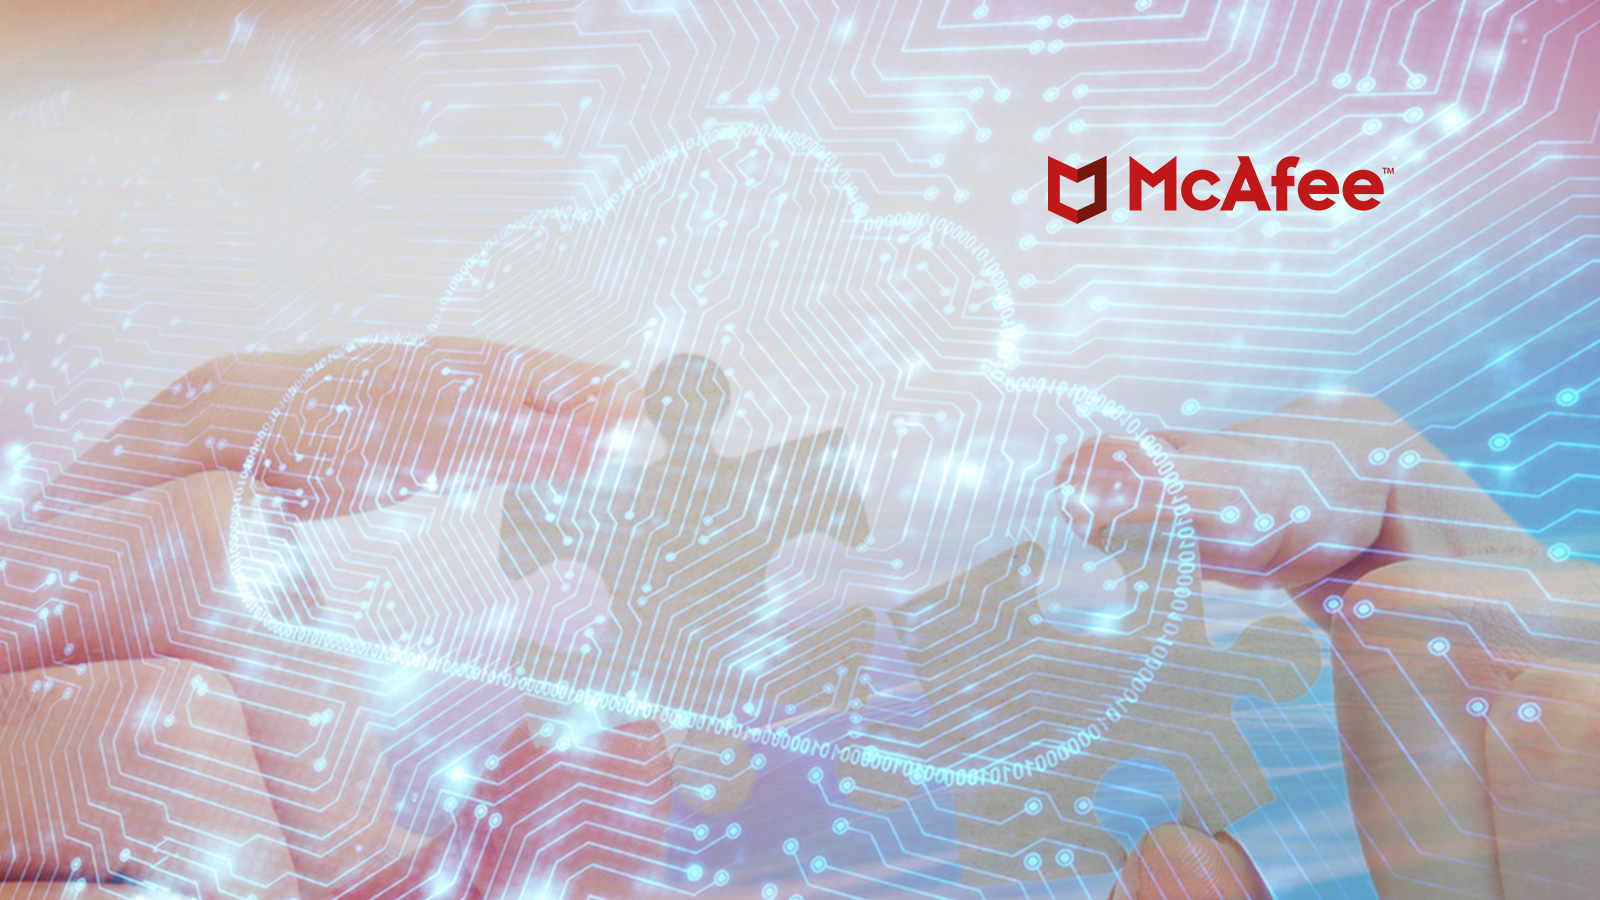 McAfee-Unveils-Integration-with-Microsoft-Teams-to-Secure-and-Manage-Collaboration-in-the-Cloud.jpg